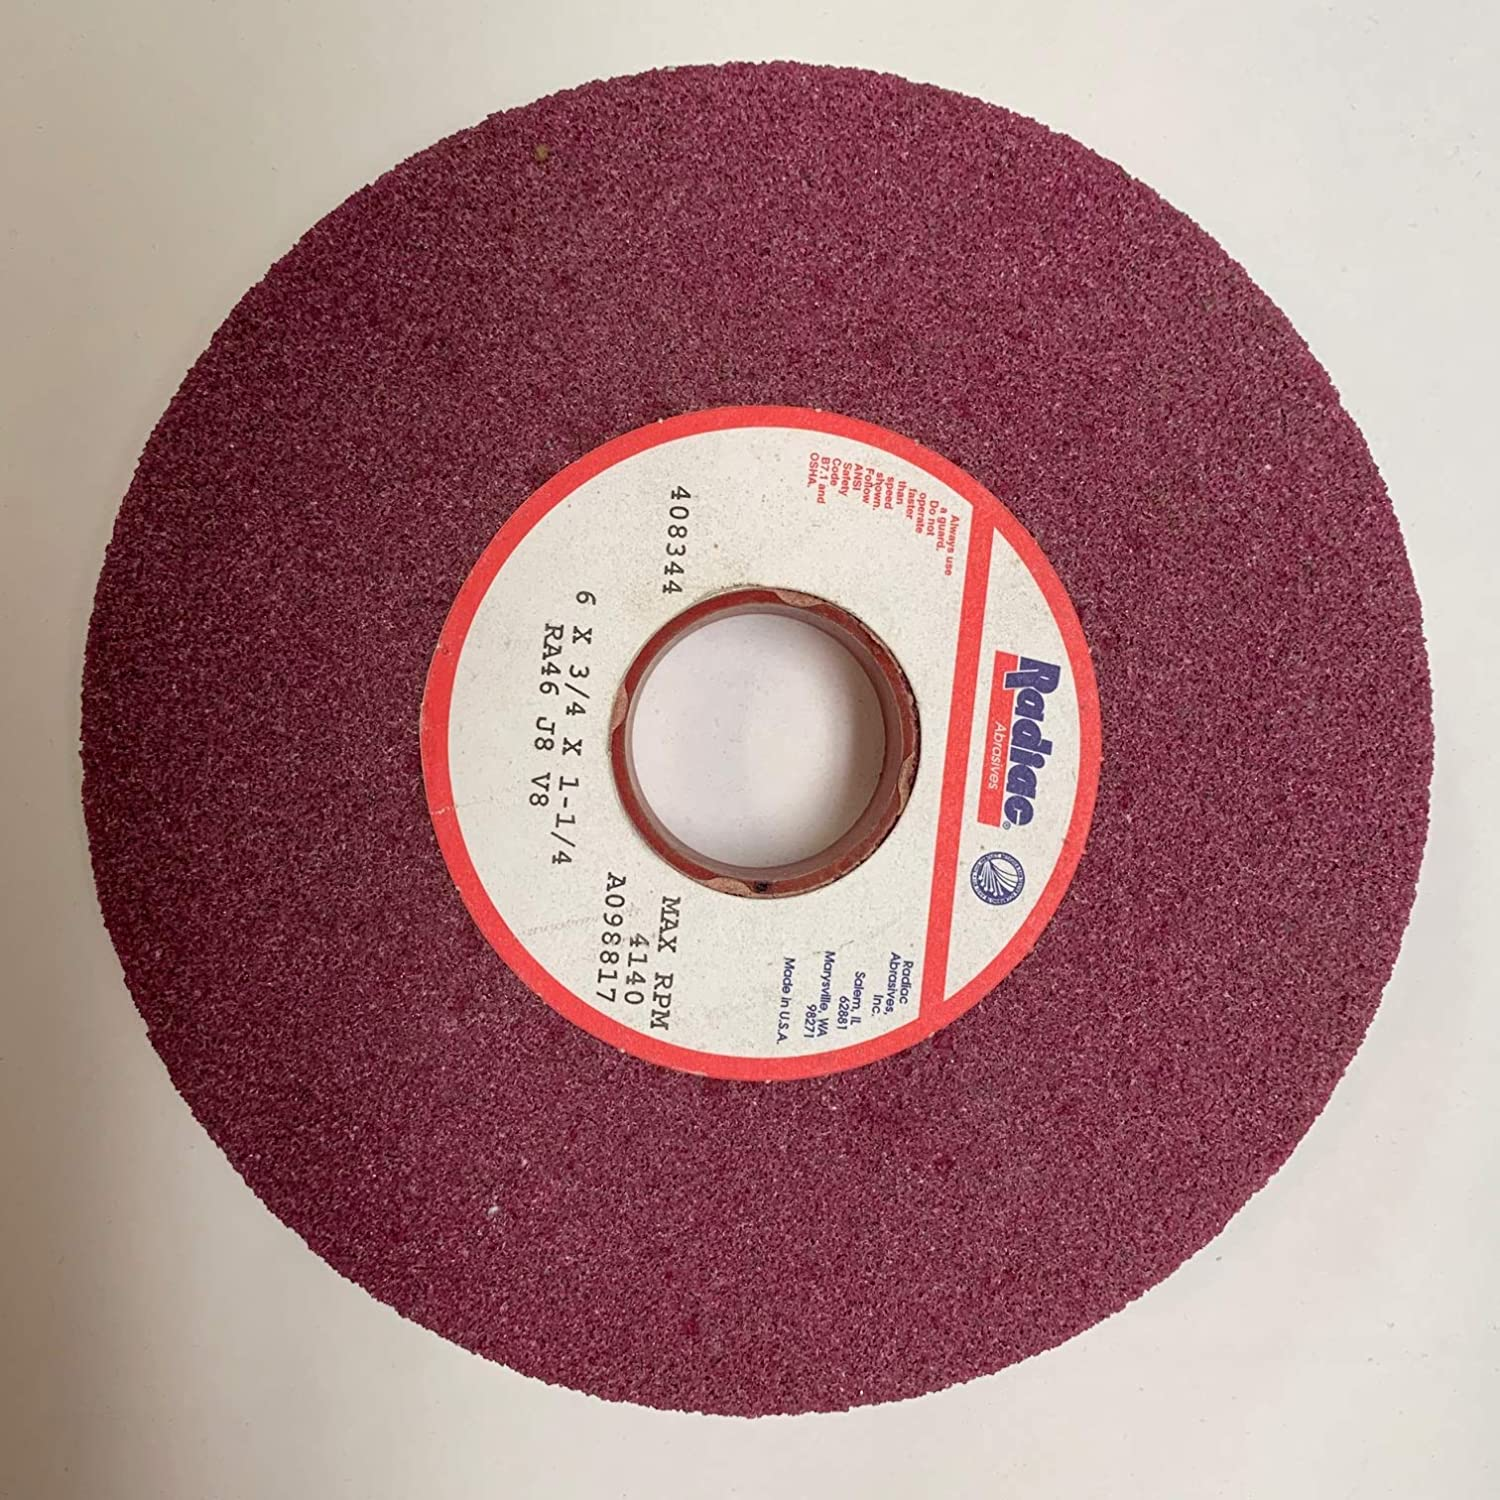 6 x 3//4 x 1-1//4 RA46 J8 V8 RADIAC Ruby RED Grinding Wheel